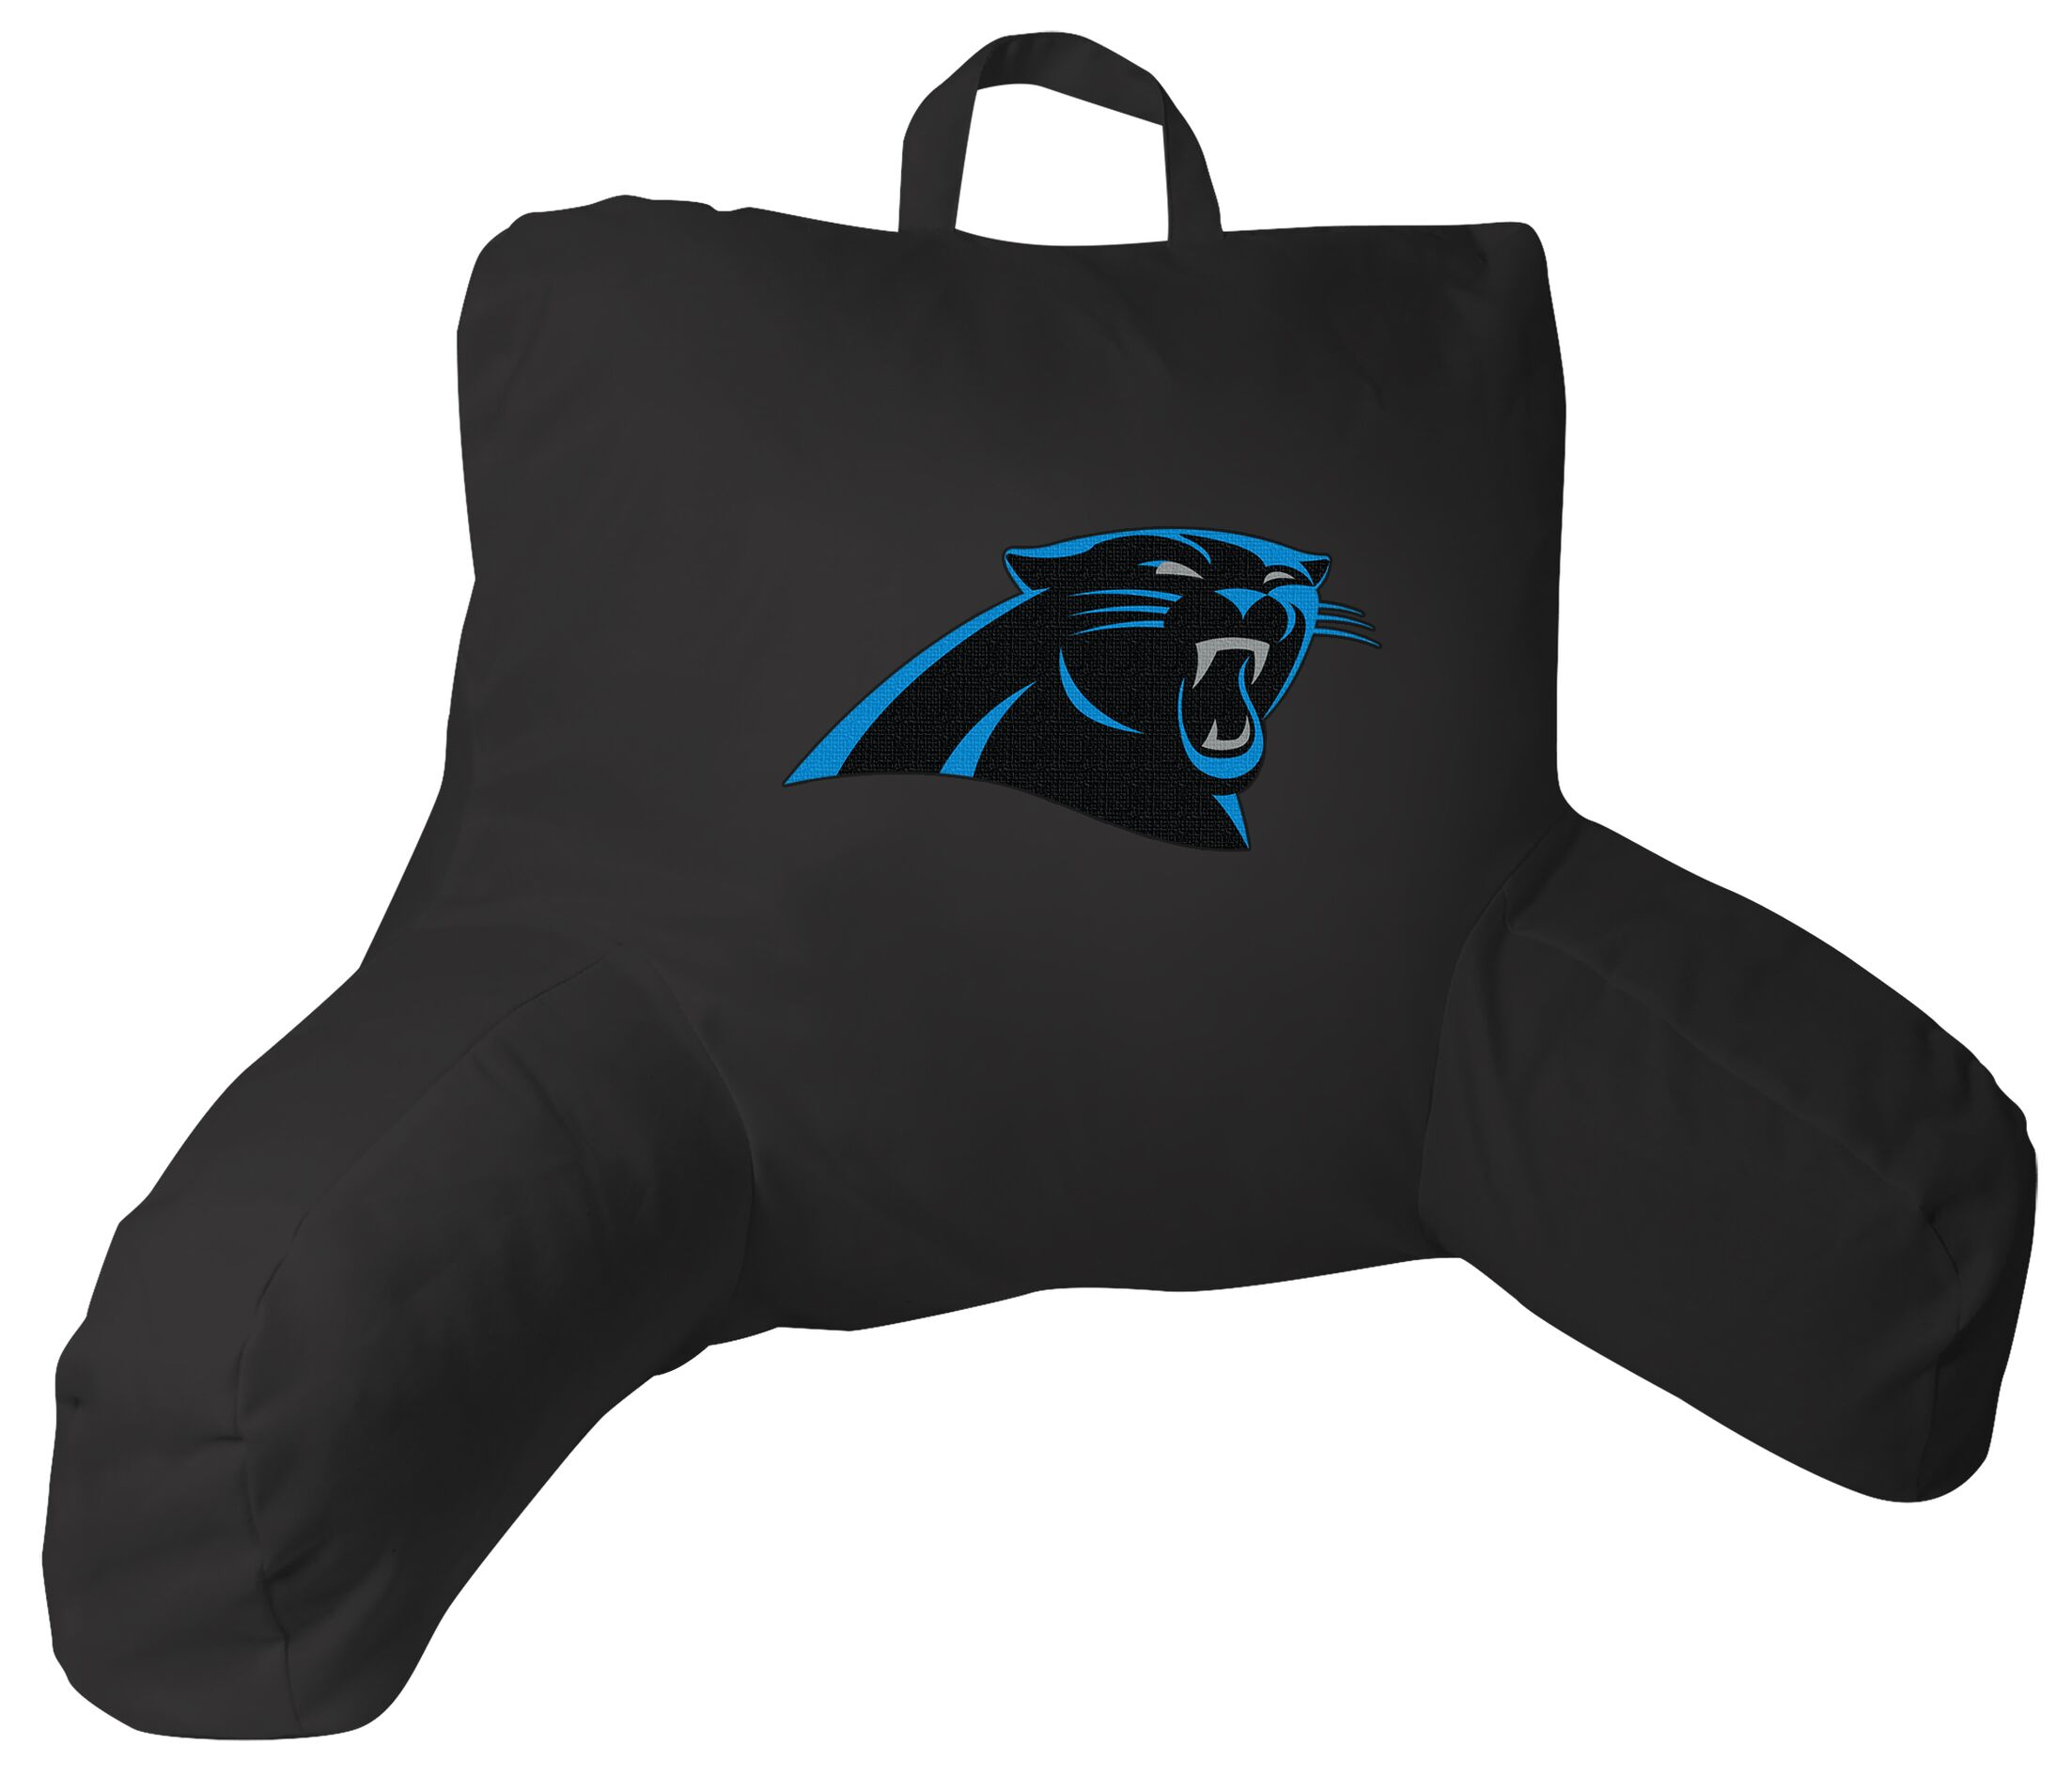 NFL Bed Rest Pillow NFL Team: Panthers